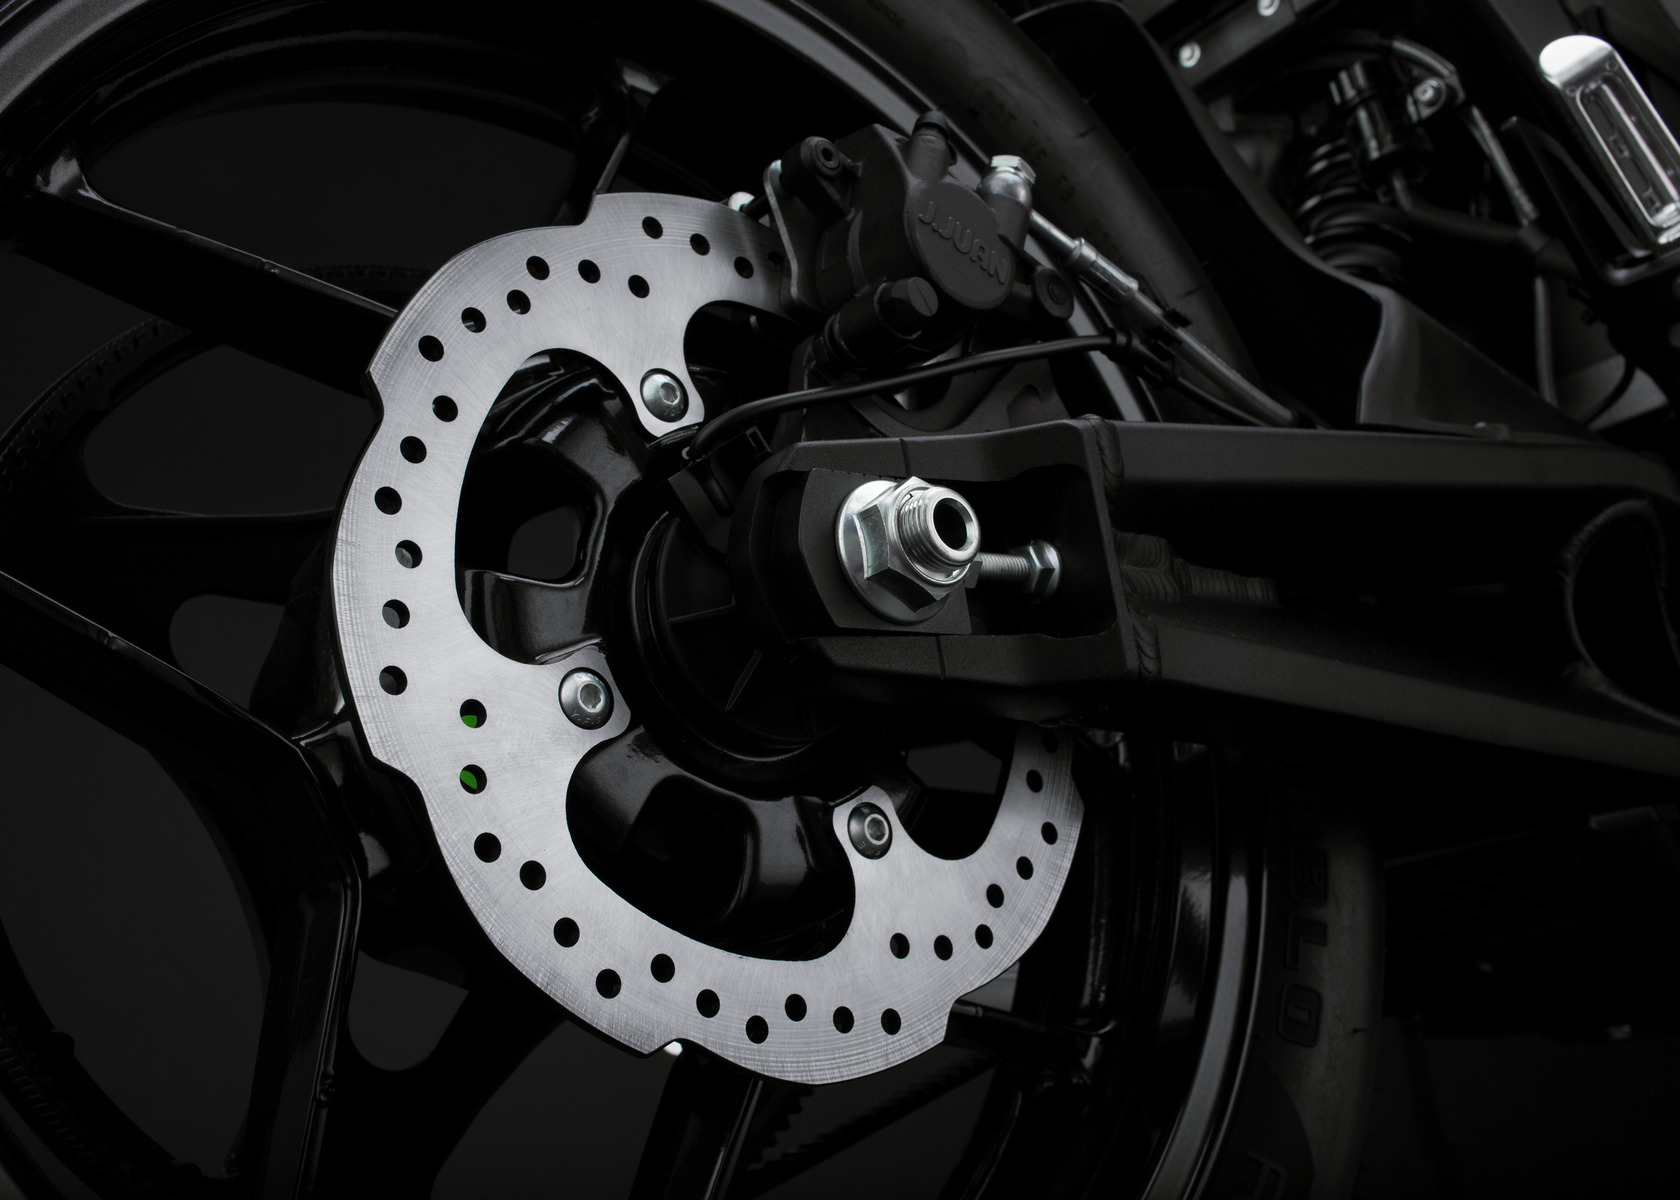 2017 Zero FXS Electric Motorcycle: Rear Brake